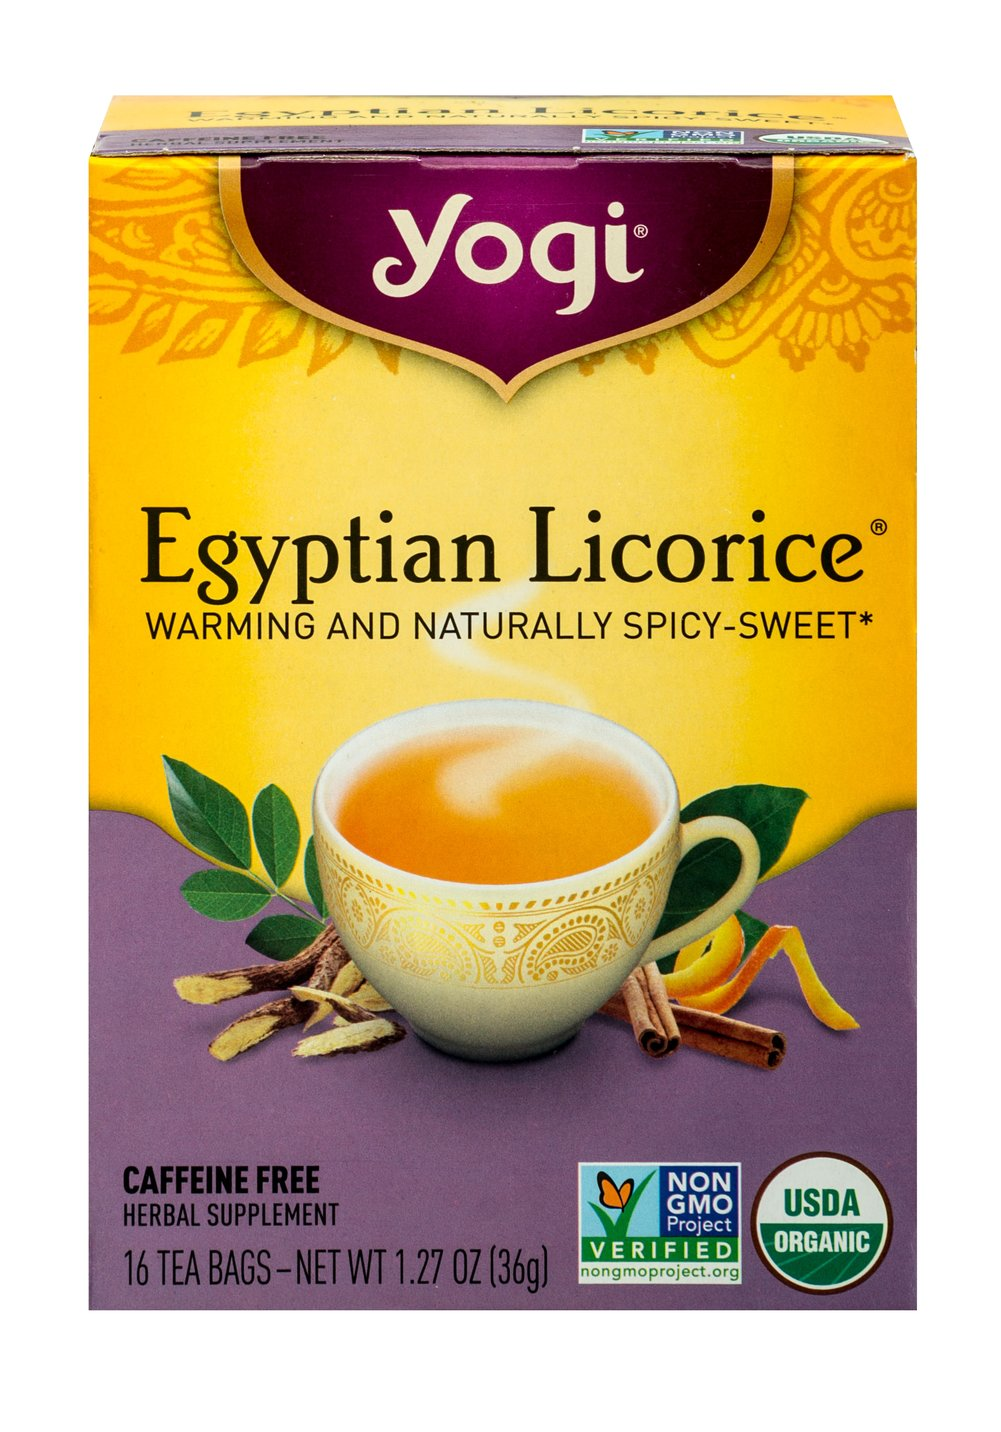 Egyptian Licorice® Tea <p><strong>From the Manufacturer's Label:</strong></p><p><strong>Delight in the Royal Taste of Egyptian Licorice</strong></p><p>Egyptian licorice is known for its natural sweetness and rich flavor. Egyptian Licorice® tea brings you this royal herb in an intriguing blend of complementary spices. This tea is sure to delight with its delicious and satisfying taste, fusing Organic Licorice with sweet and spicy